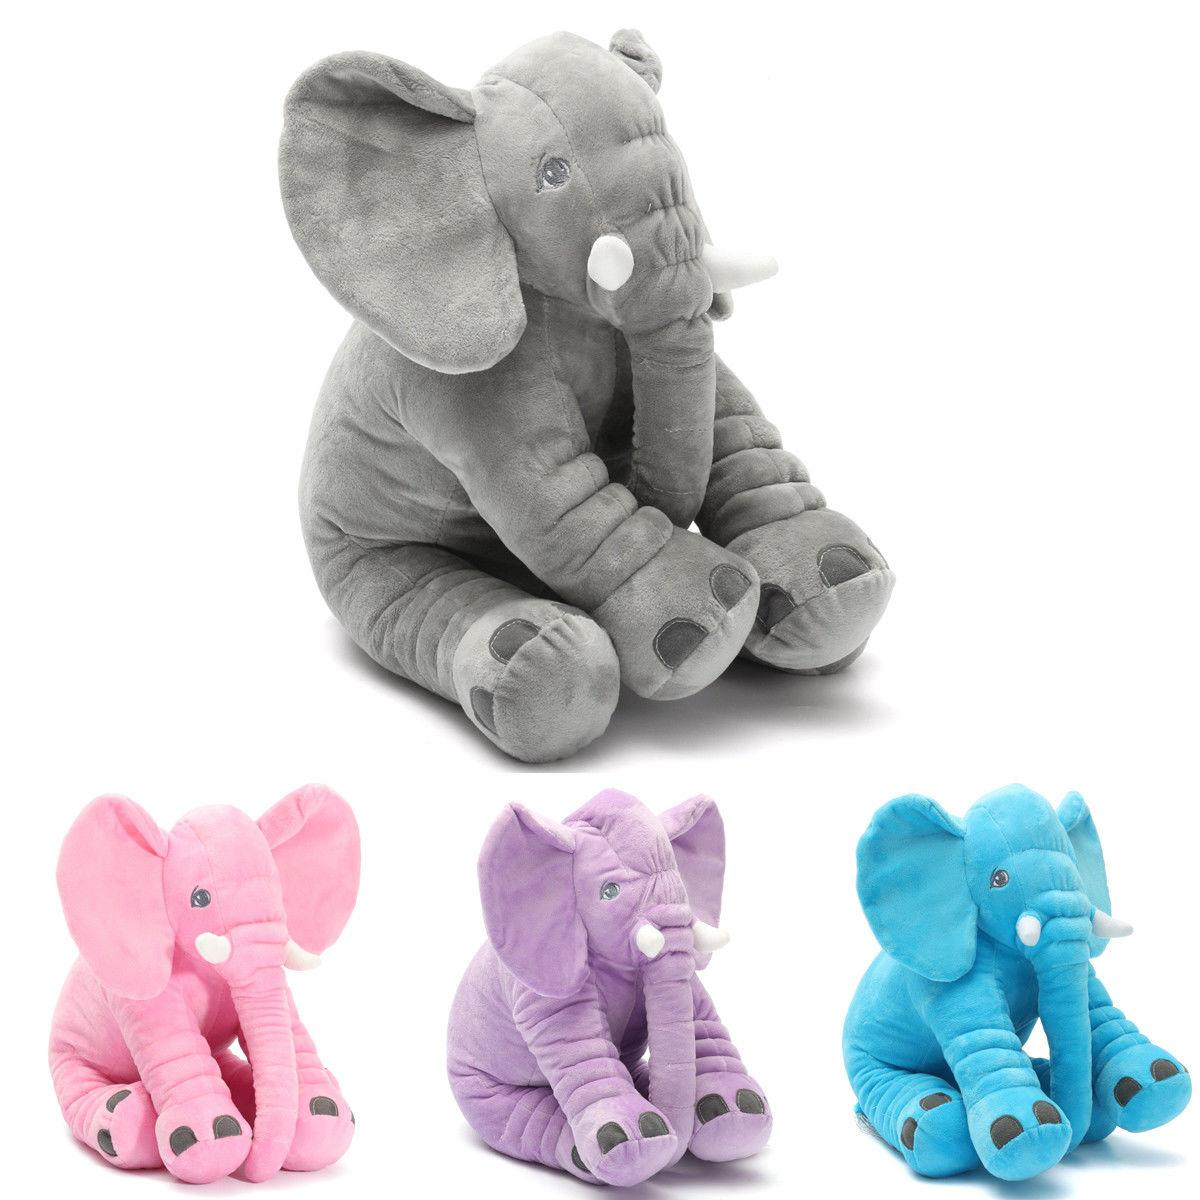 Elephant Soft Stuff Lumbar Cushion Baby Valentine's